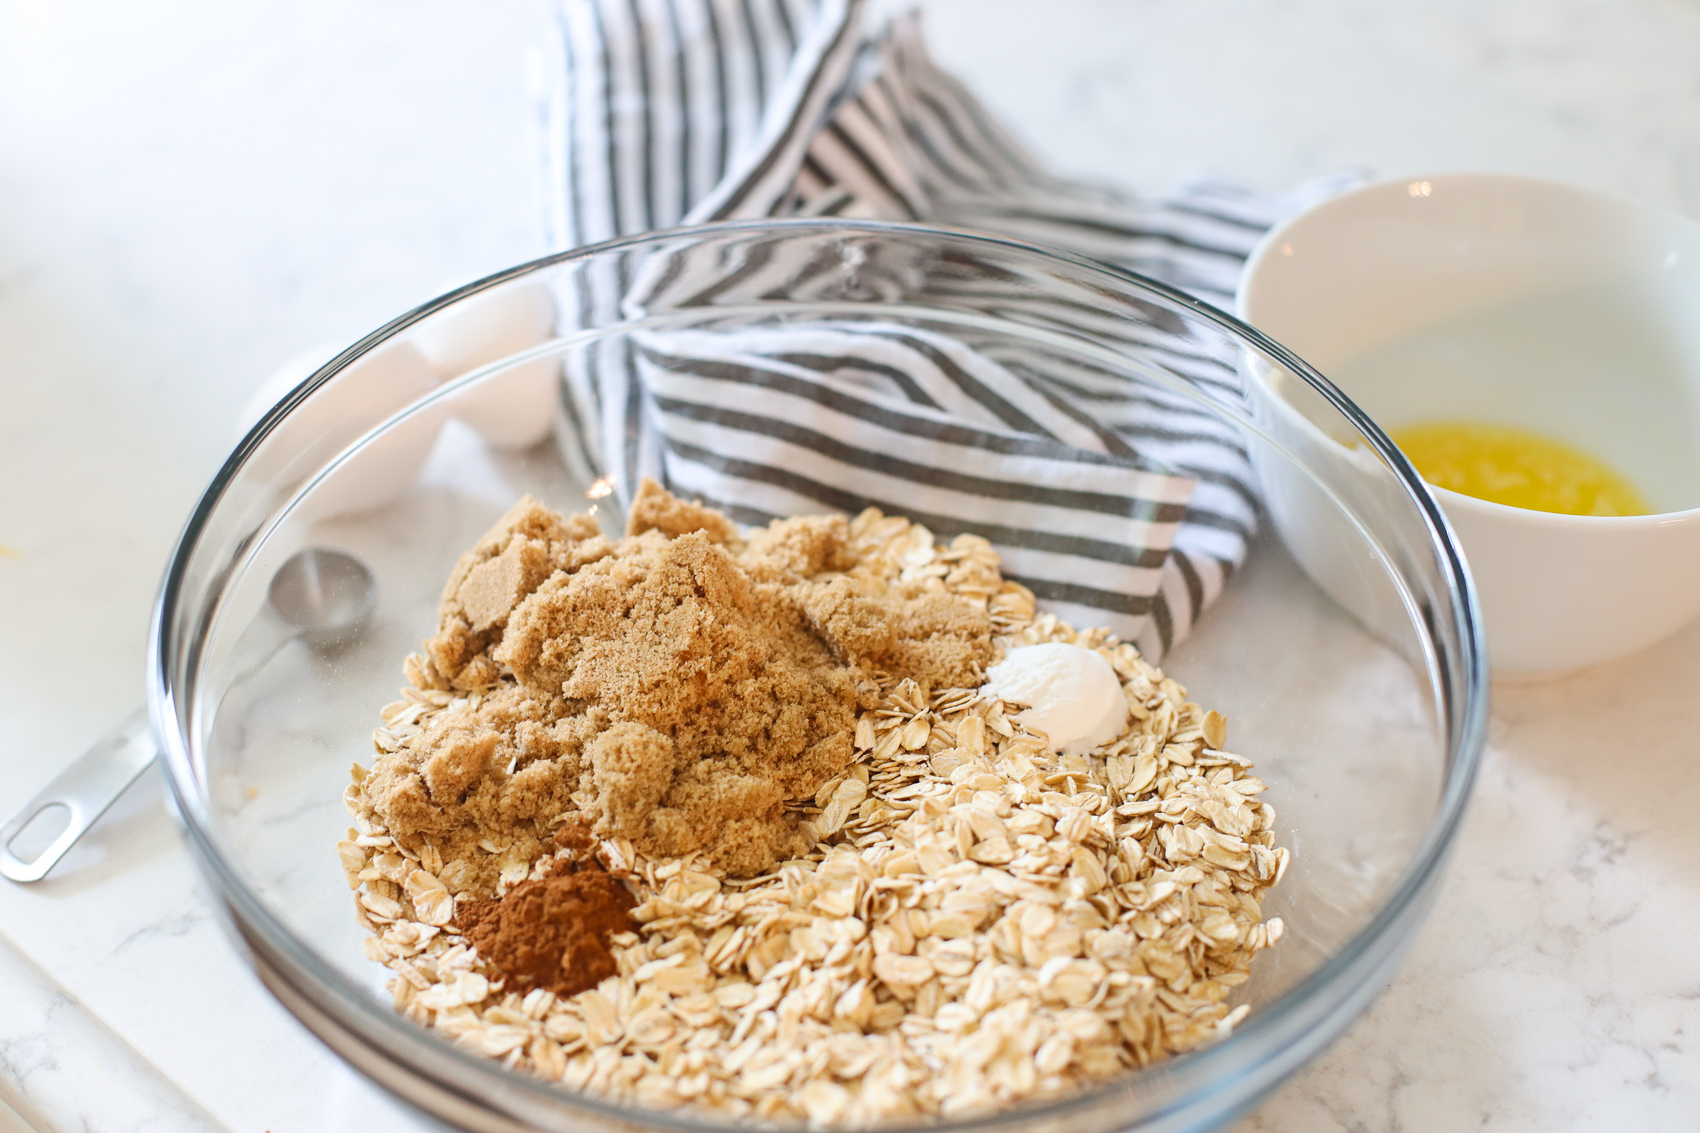 Oatmeal, brown sugar and cinnamon in a bowl.